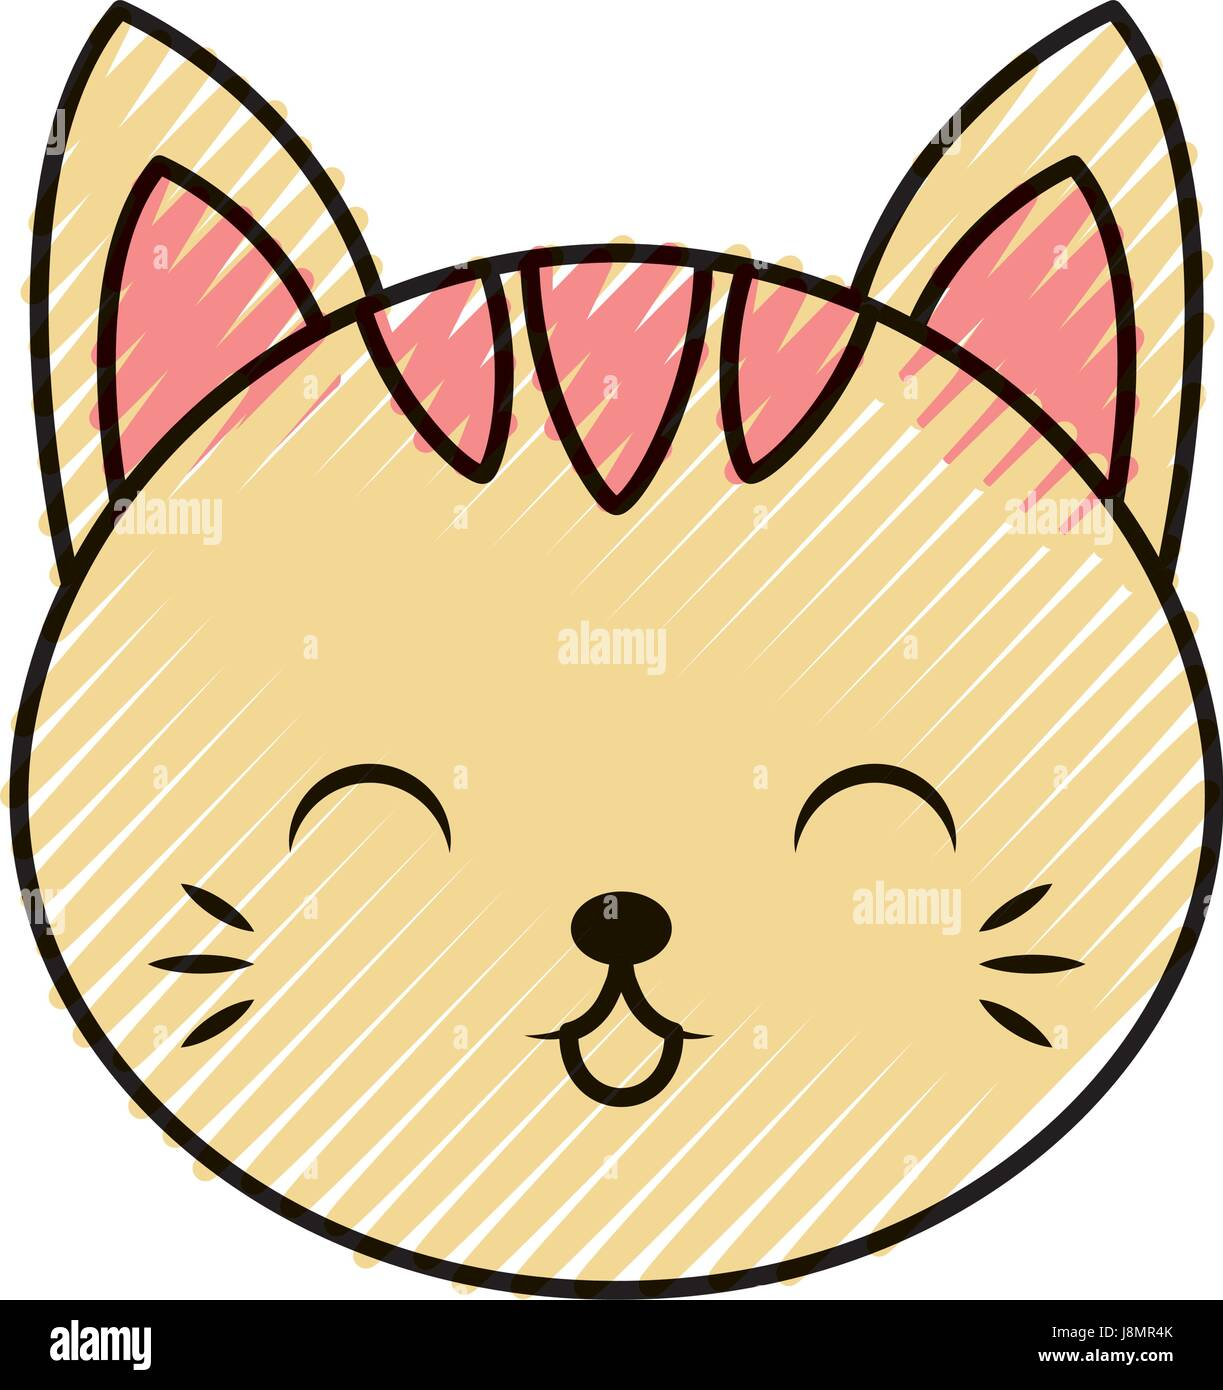 Cute Scribble Cat Face Cartoon Stock Vector Image Art Alamy